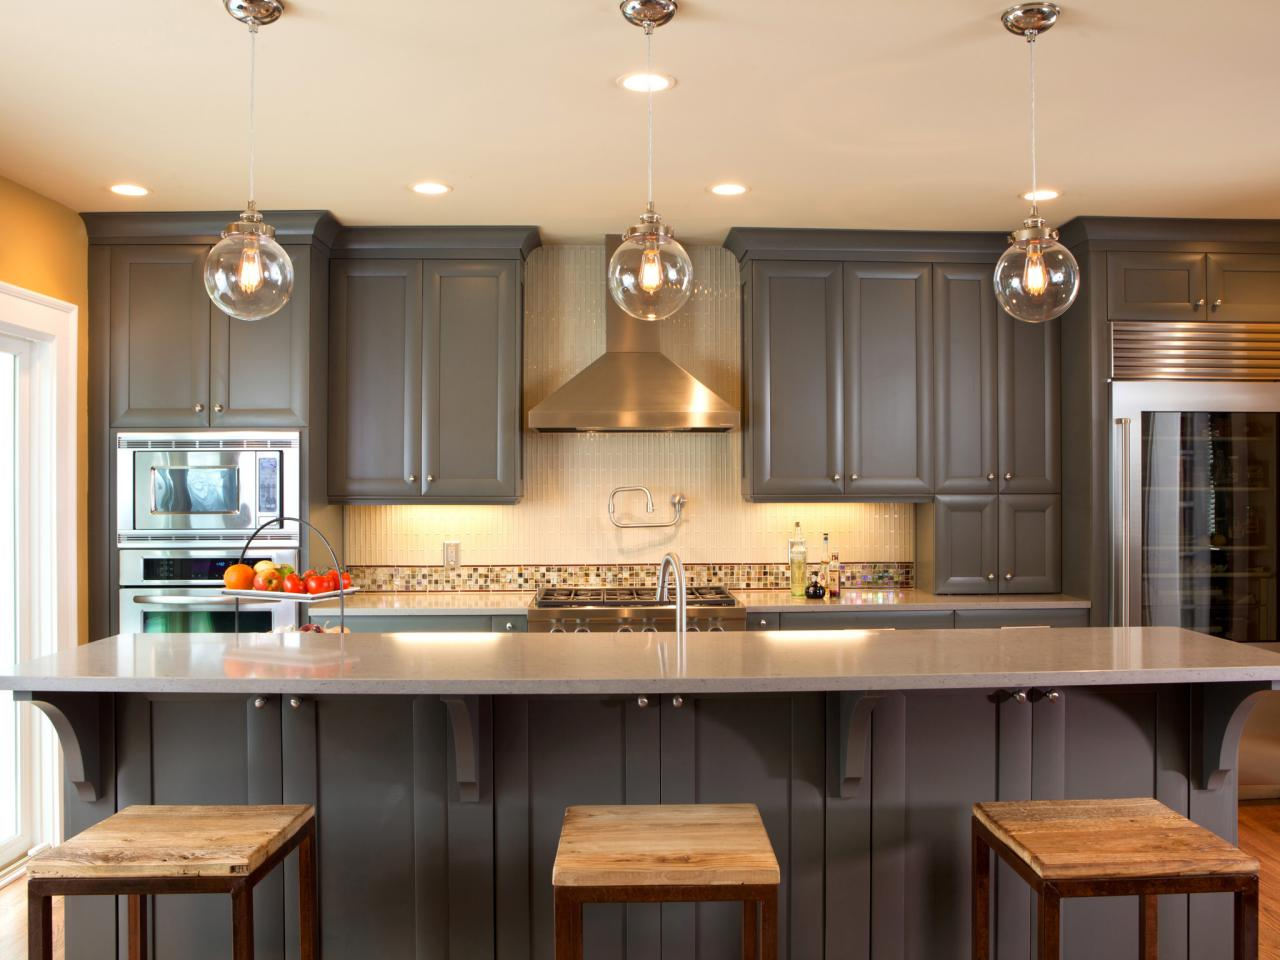 Image of: painting kitchen cabinets ideas